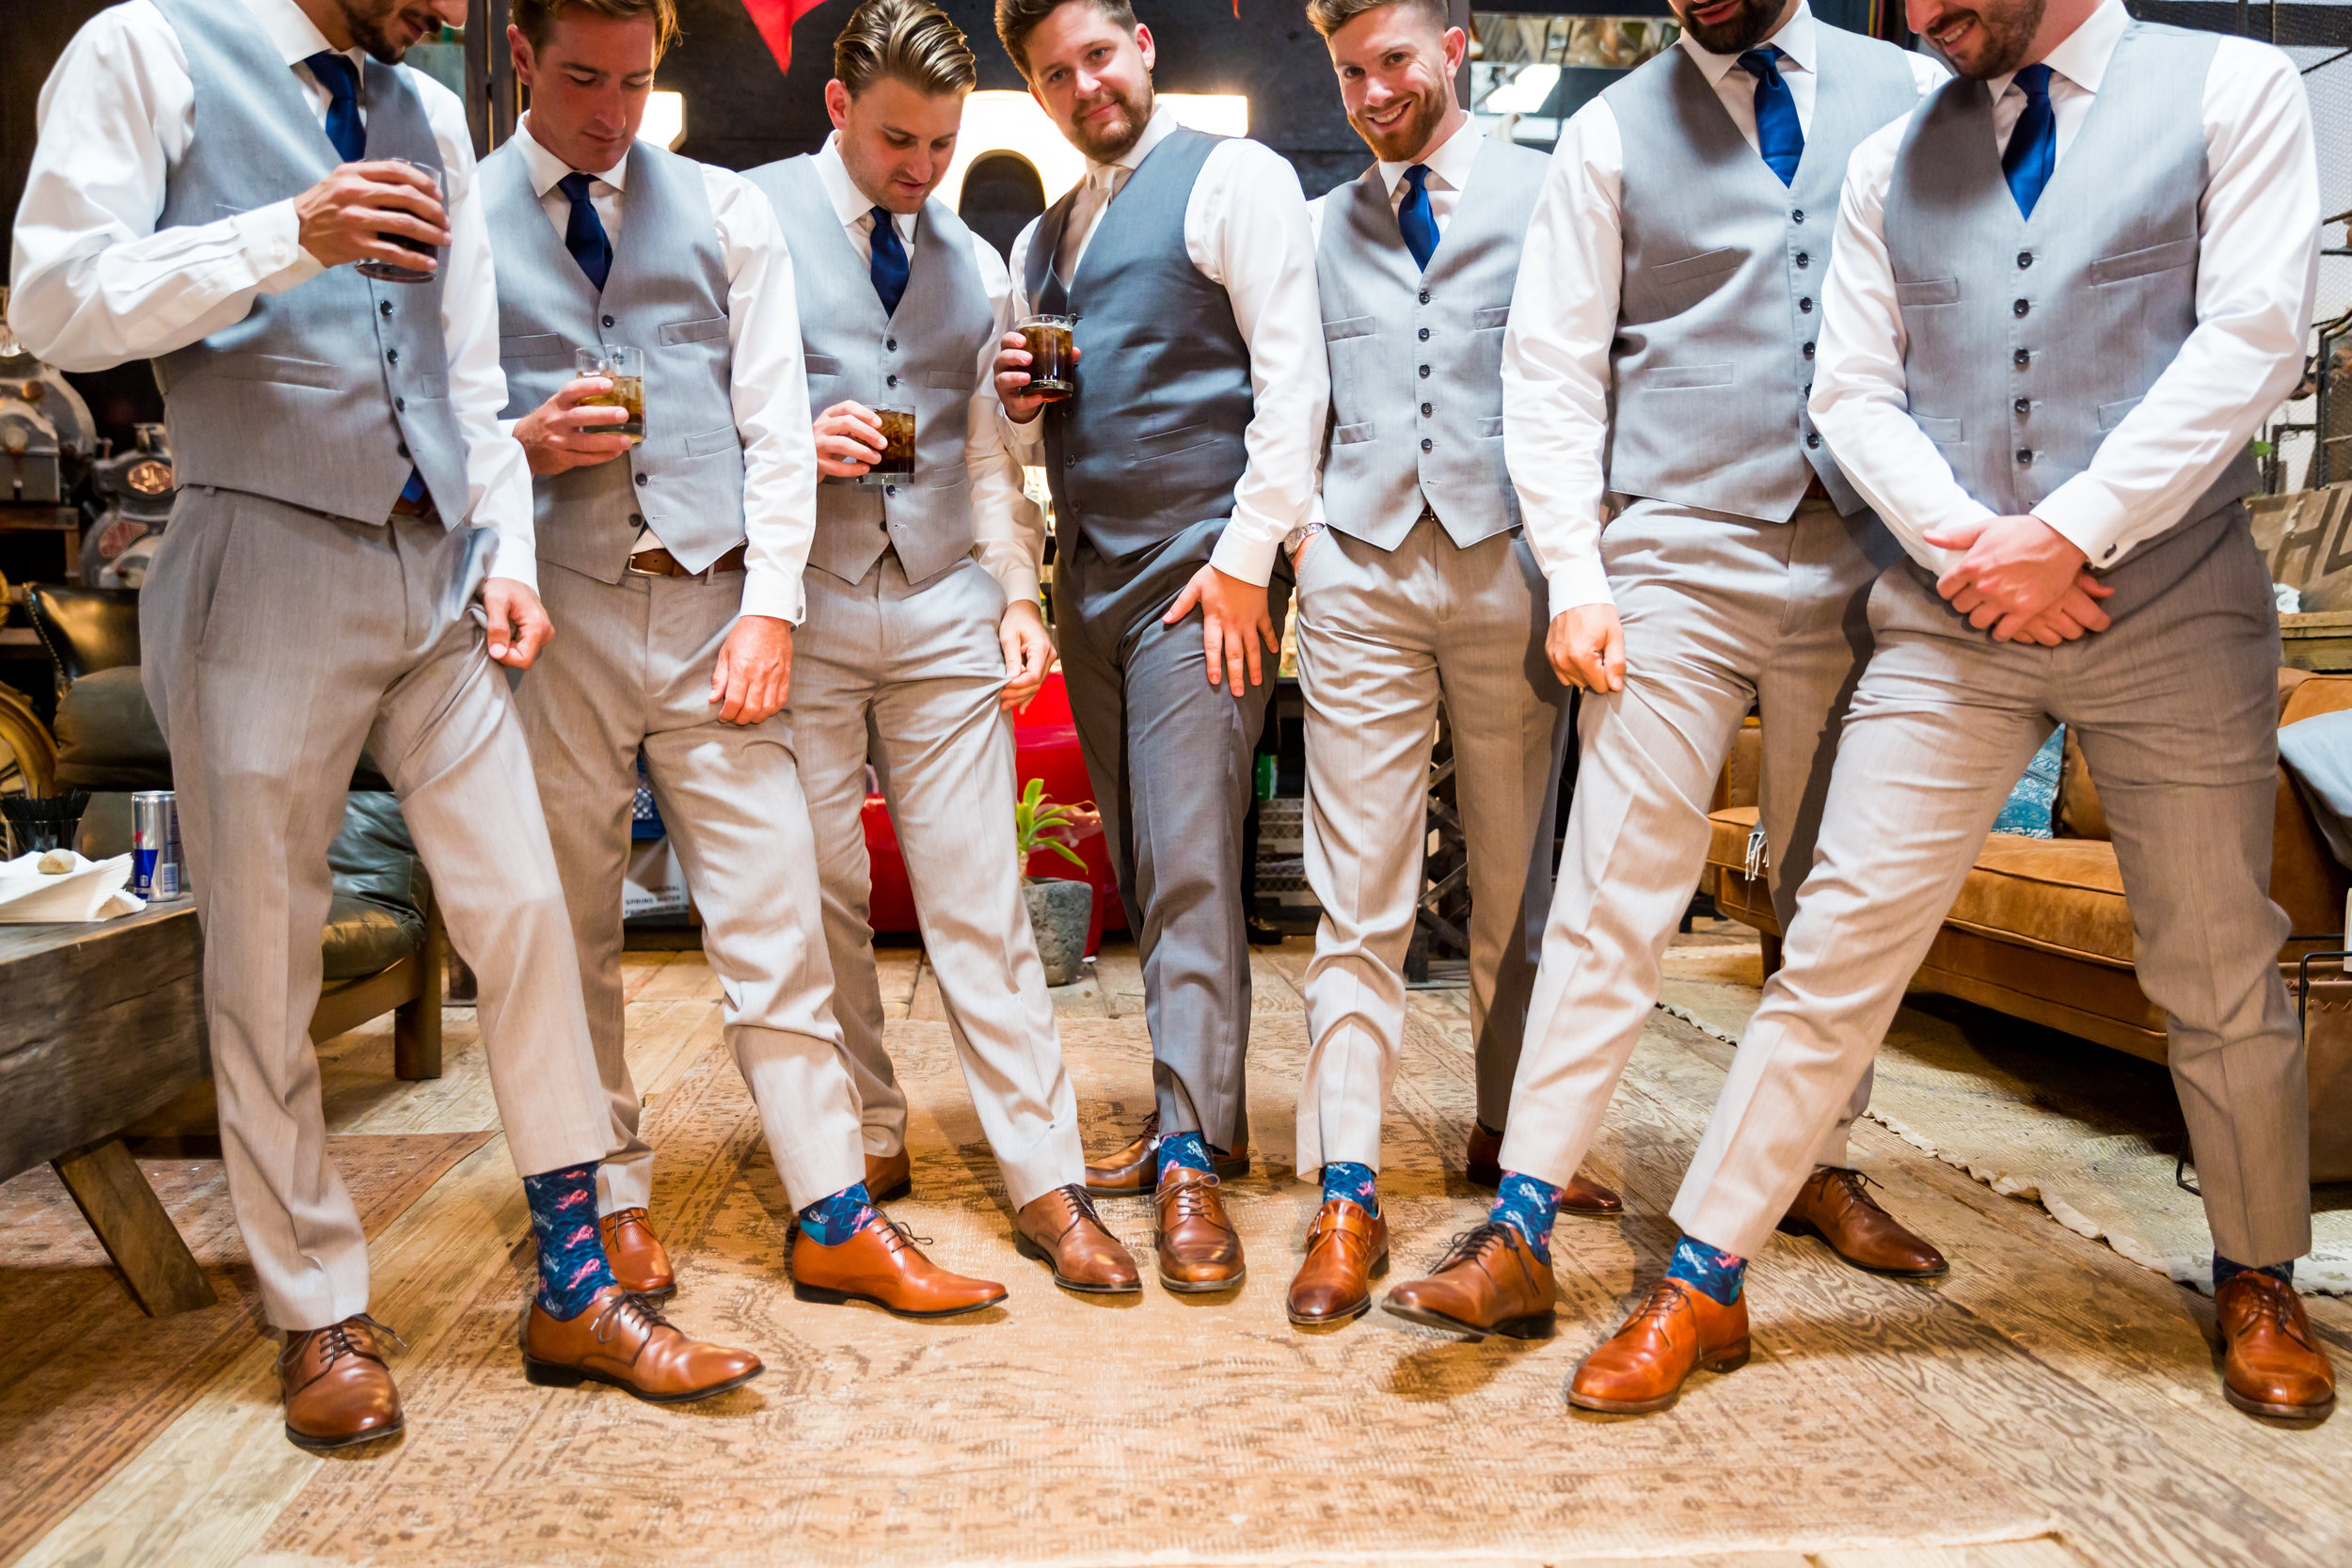 cluster events - brittany and david wedding 7.JPG